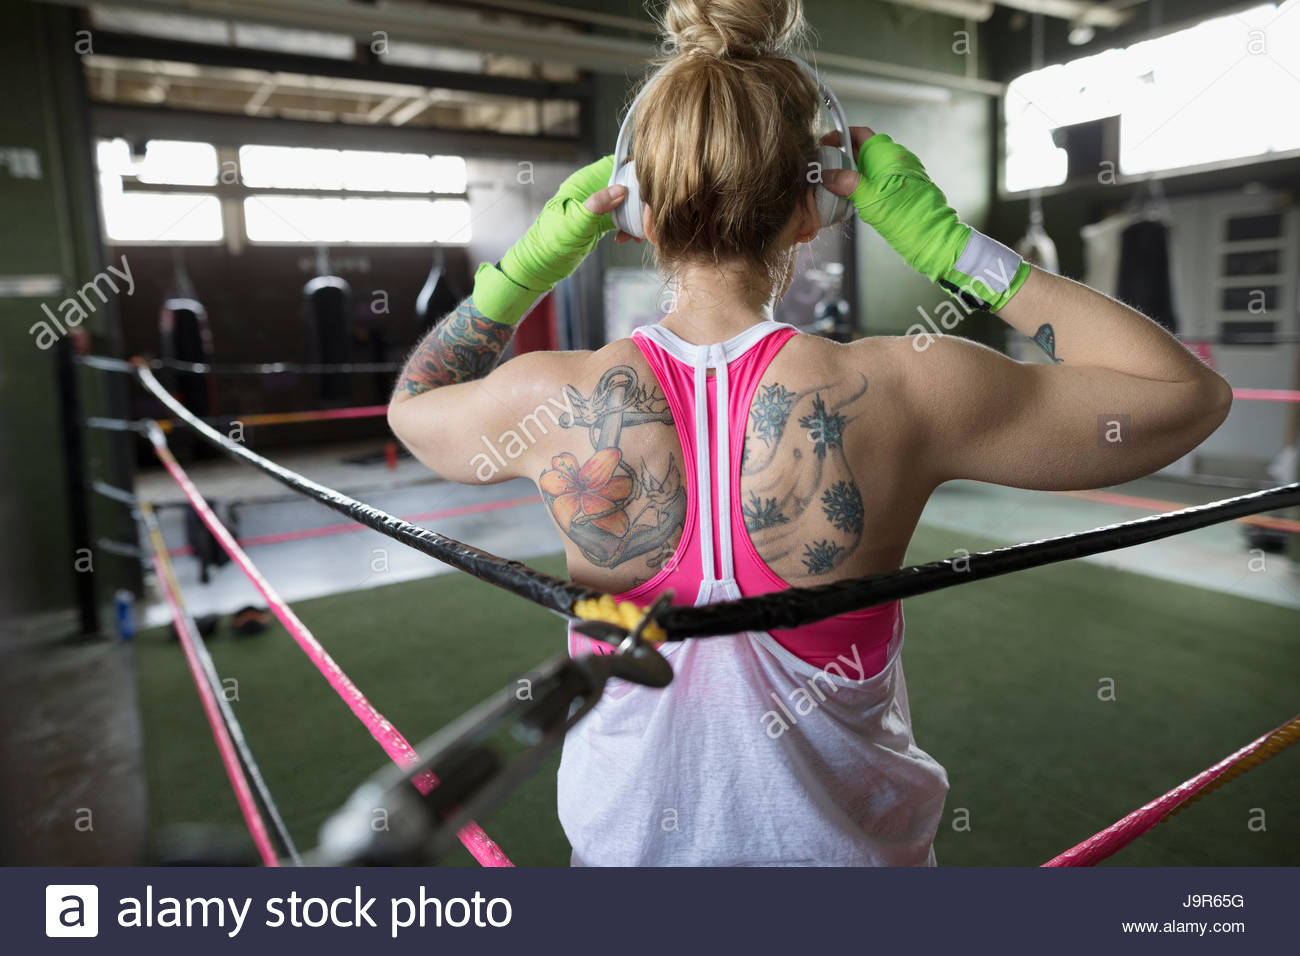 Rear view tattooed woman boxer listening to music with headphones in boxing ring at gym - Stock Image